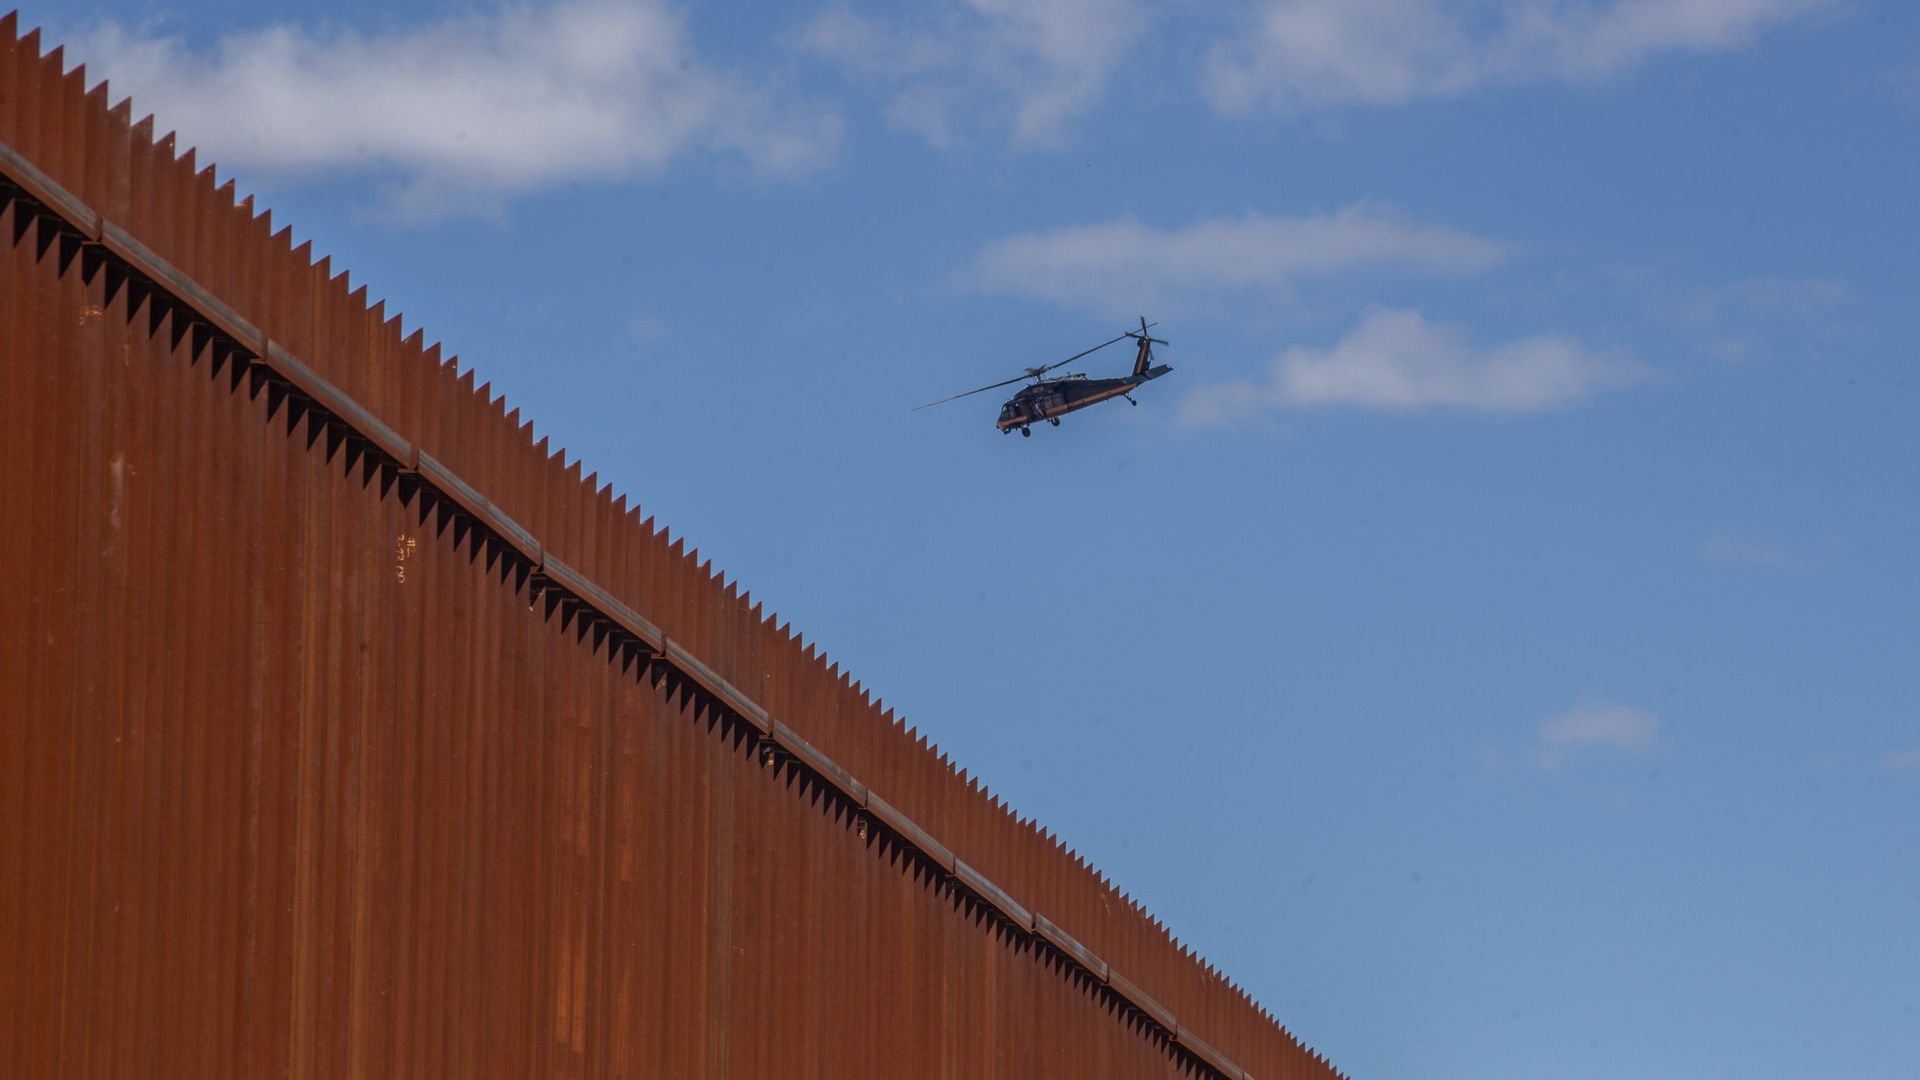 In this image, a helicopter flies over a border wall.